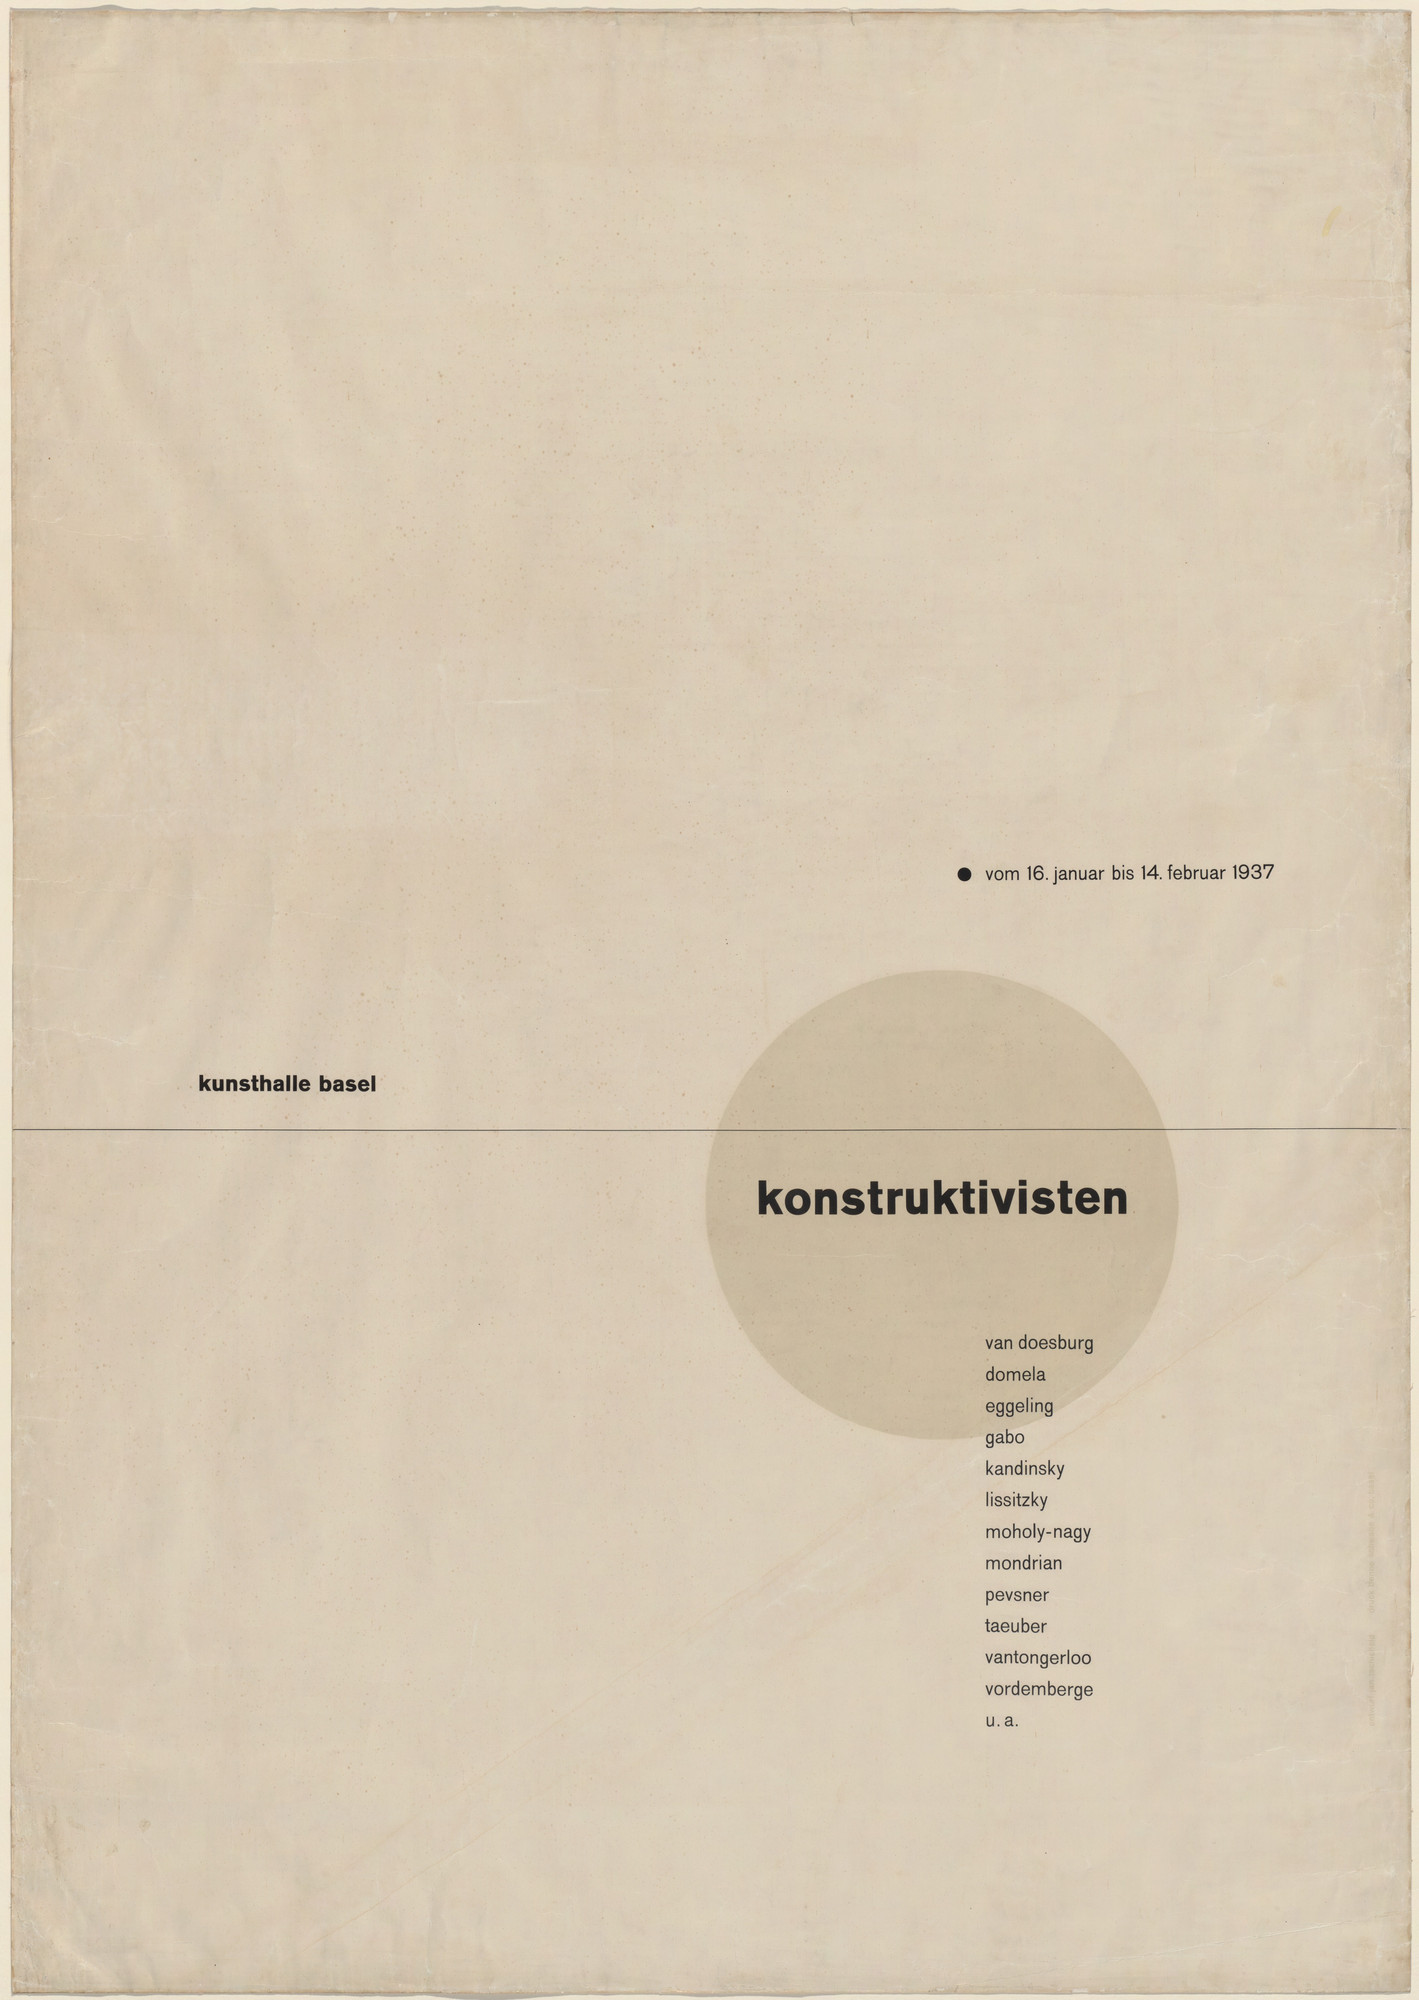 Jan Tschichold. Die Konstruktivisten (The Constructivists) (Poster for exhibition in the Kunsthalle Basel). 1937